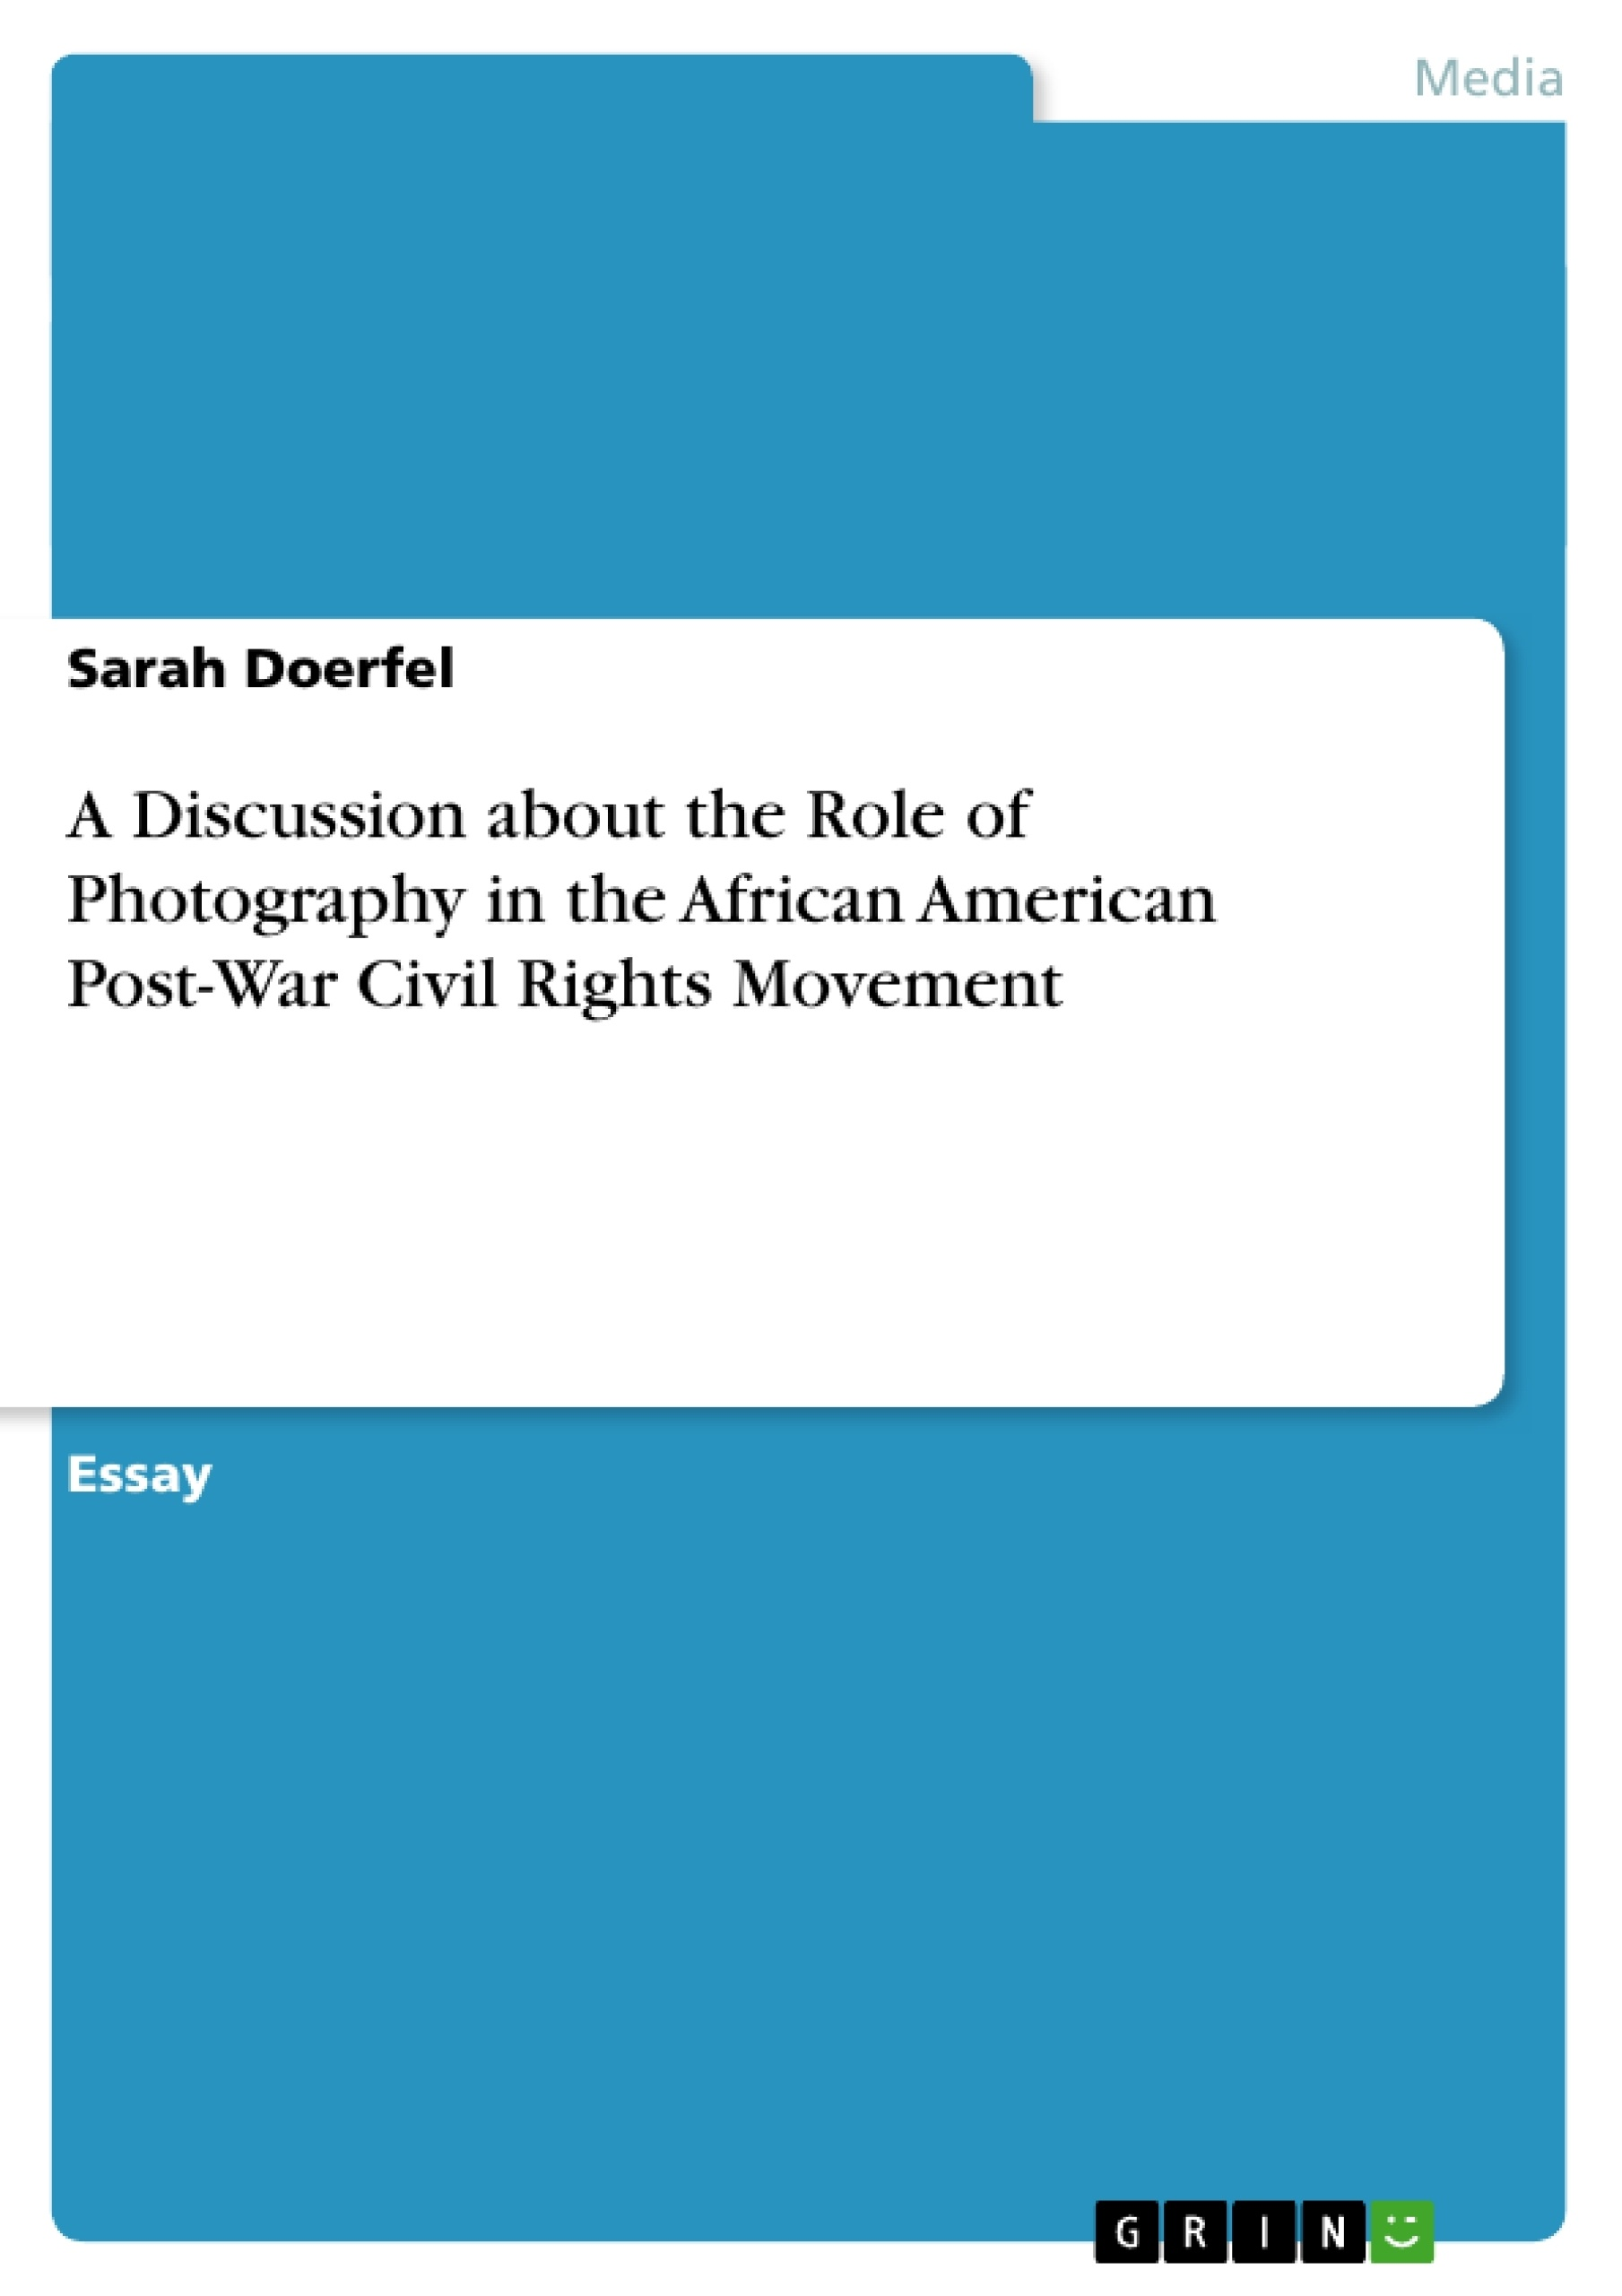 Title: A Discussion about the Role of Photography in the African American Post-War Civil Rights Movement